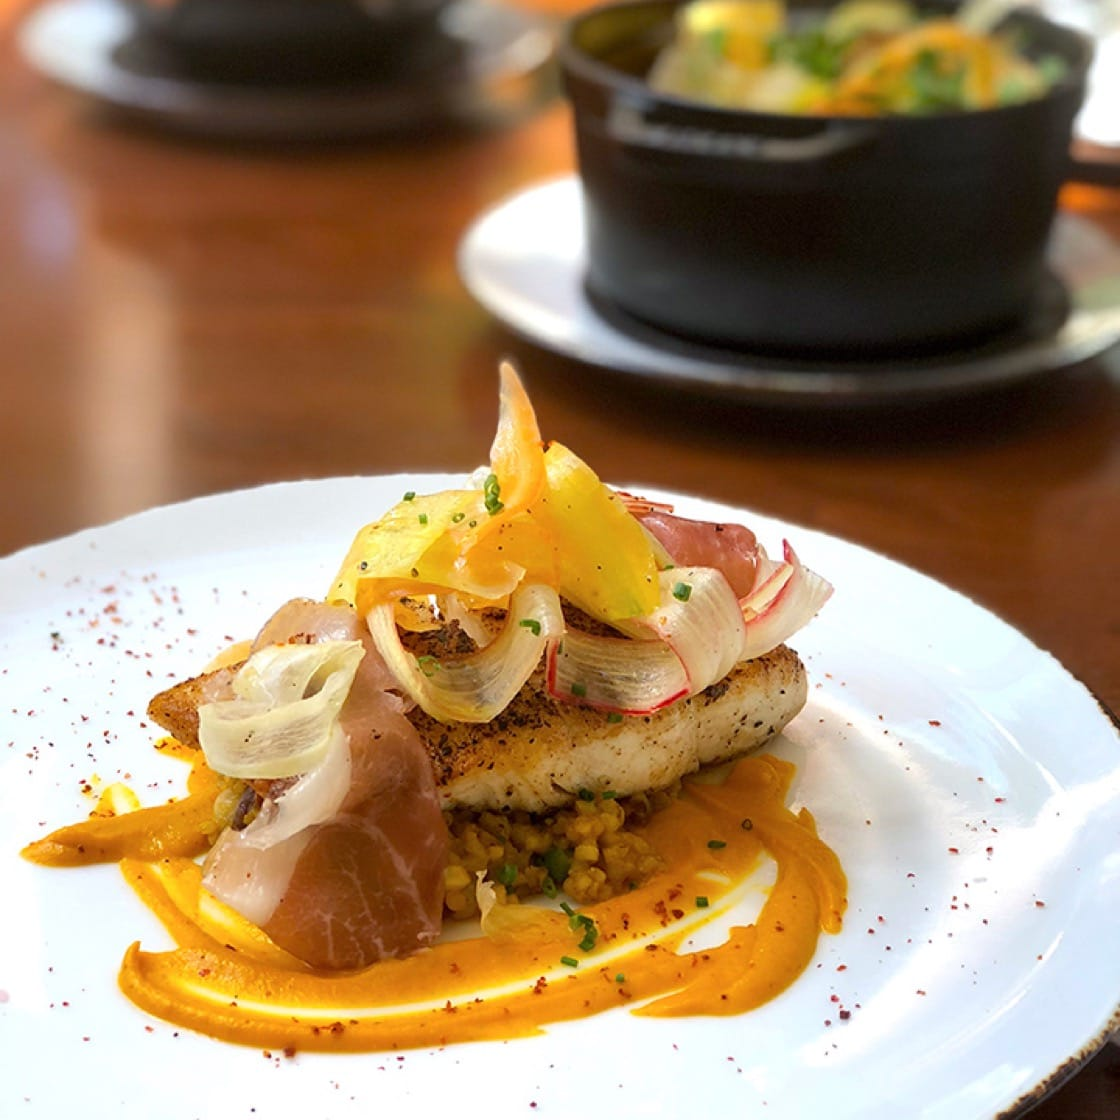 Spice-roasted halibut with Carolina Gold broken rice pirlau, heirloom carrots, country ham, rhubarb and boiled peanuts. (Photo by Lani Furbank.)